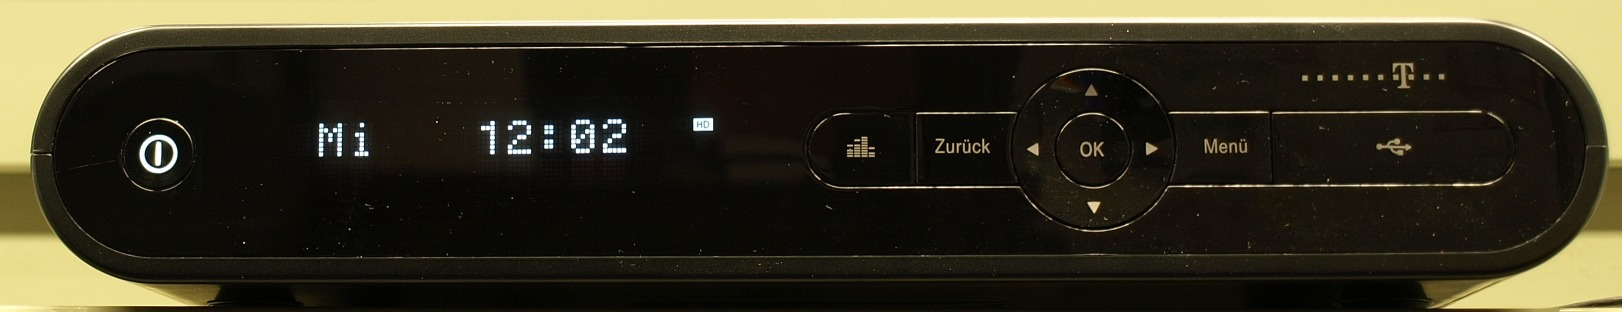 Telekom Entertain: Update für Media Receiver behebt ...